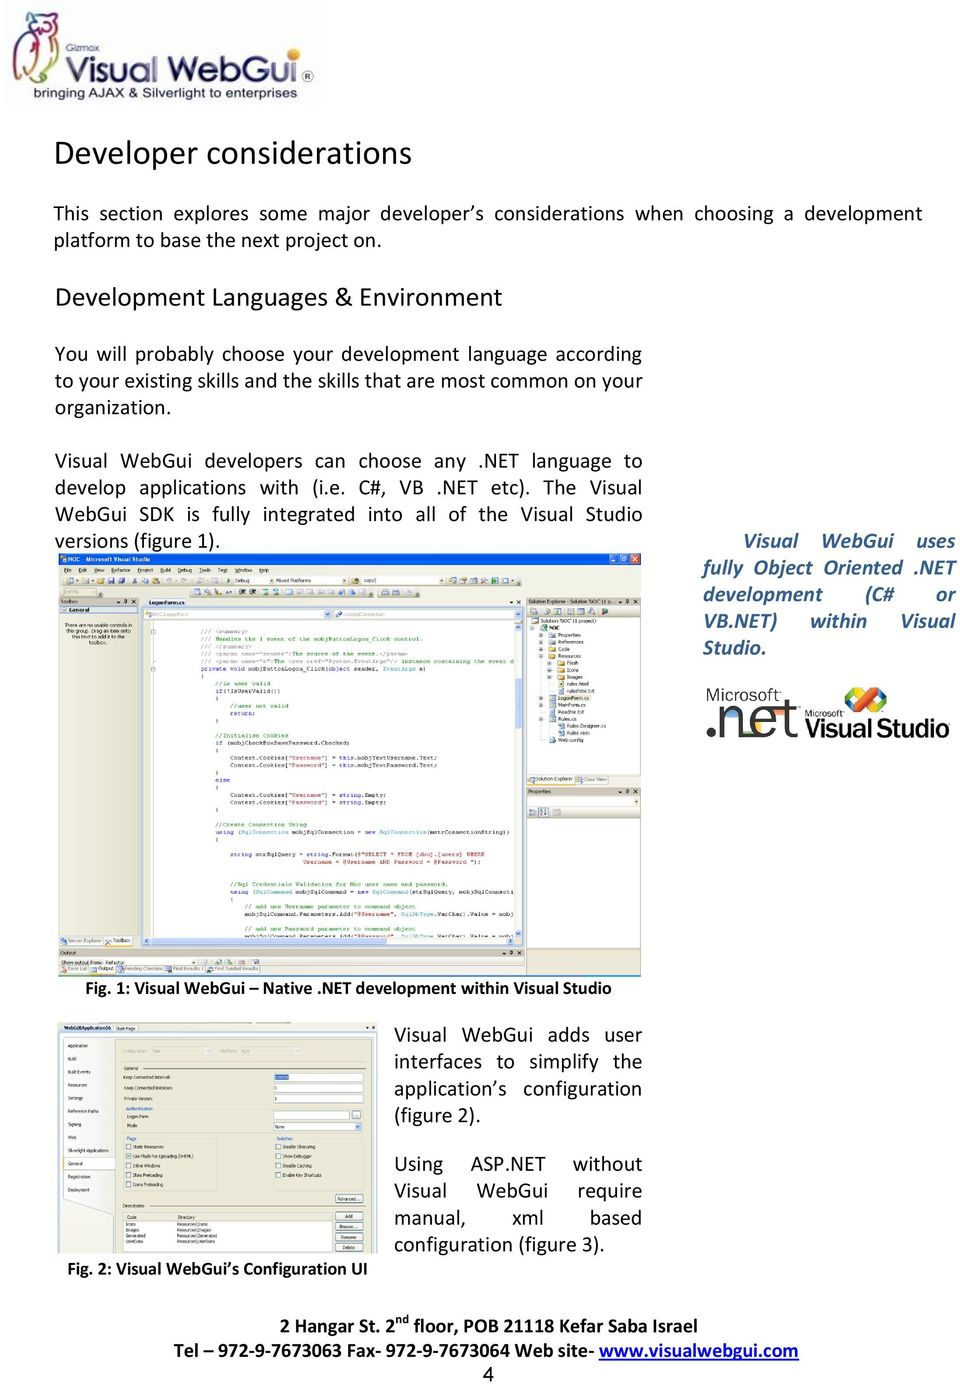 Visual WebGui developers can choose any.net language to develop applications with (i.e. C#, VB.NET etc). The Visual WebGui SDK is fully integrated into all of the Visual Studio versions (figure 1).